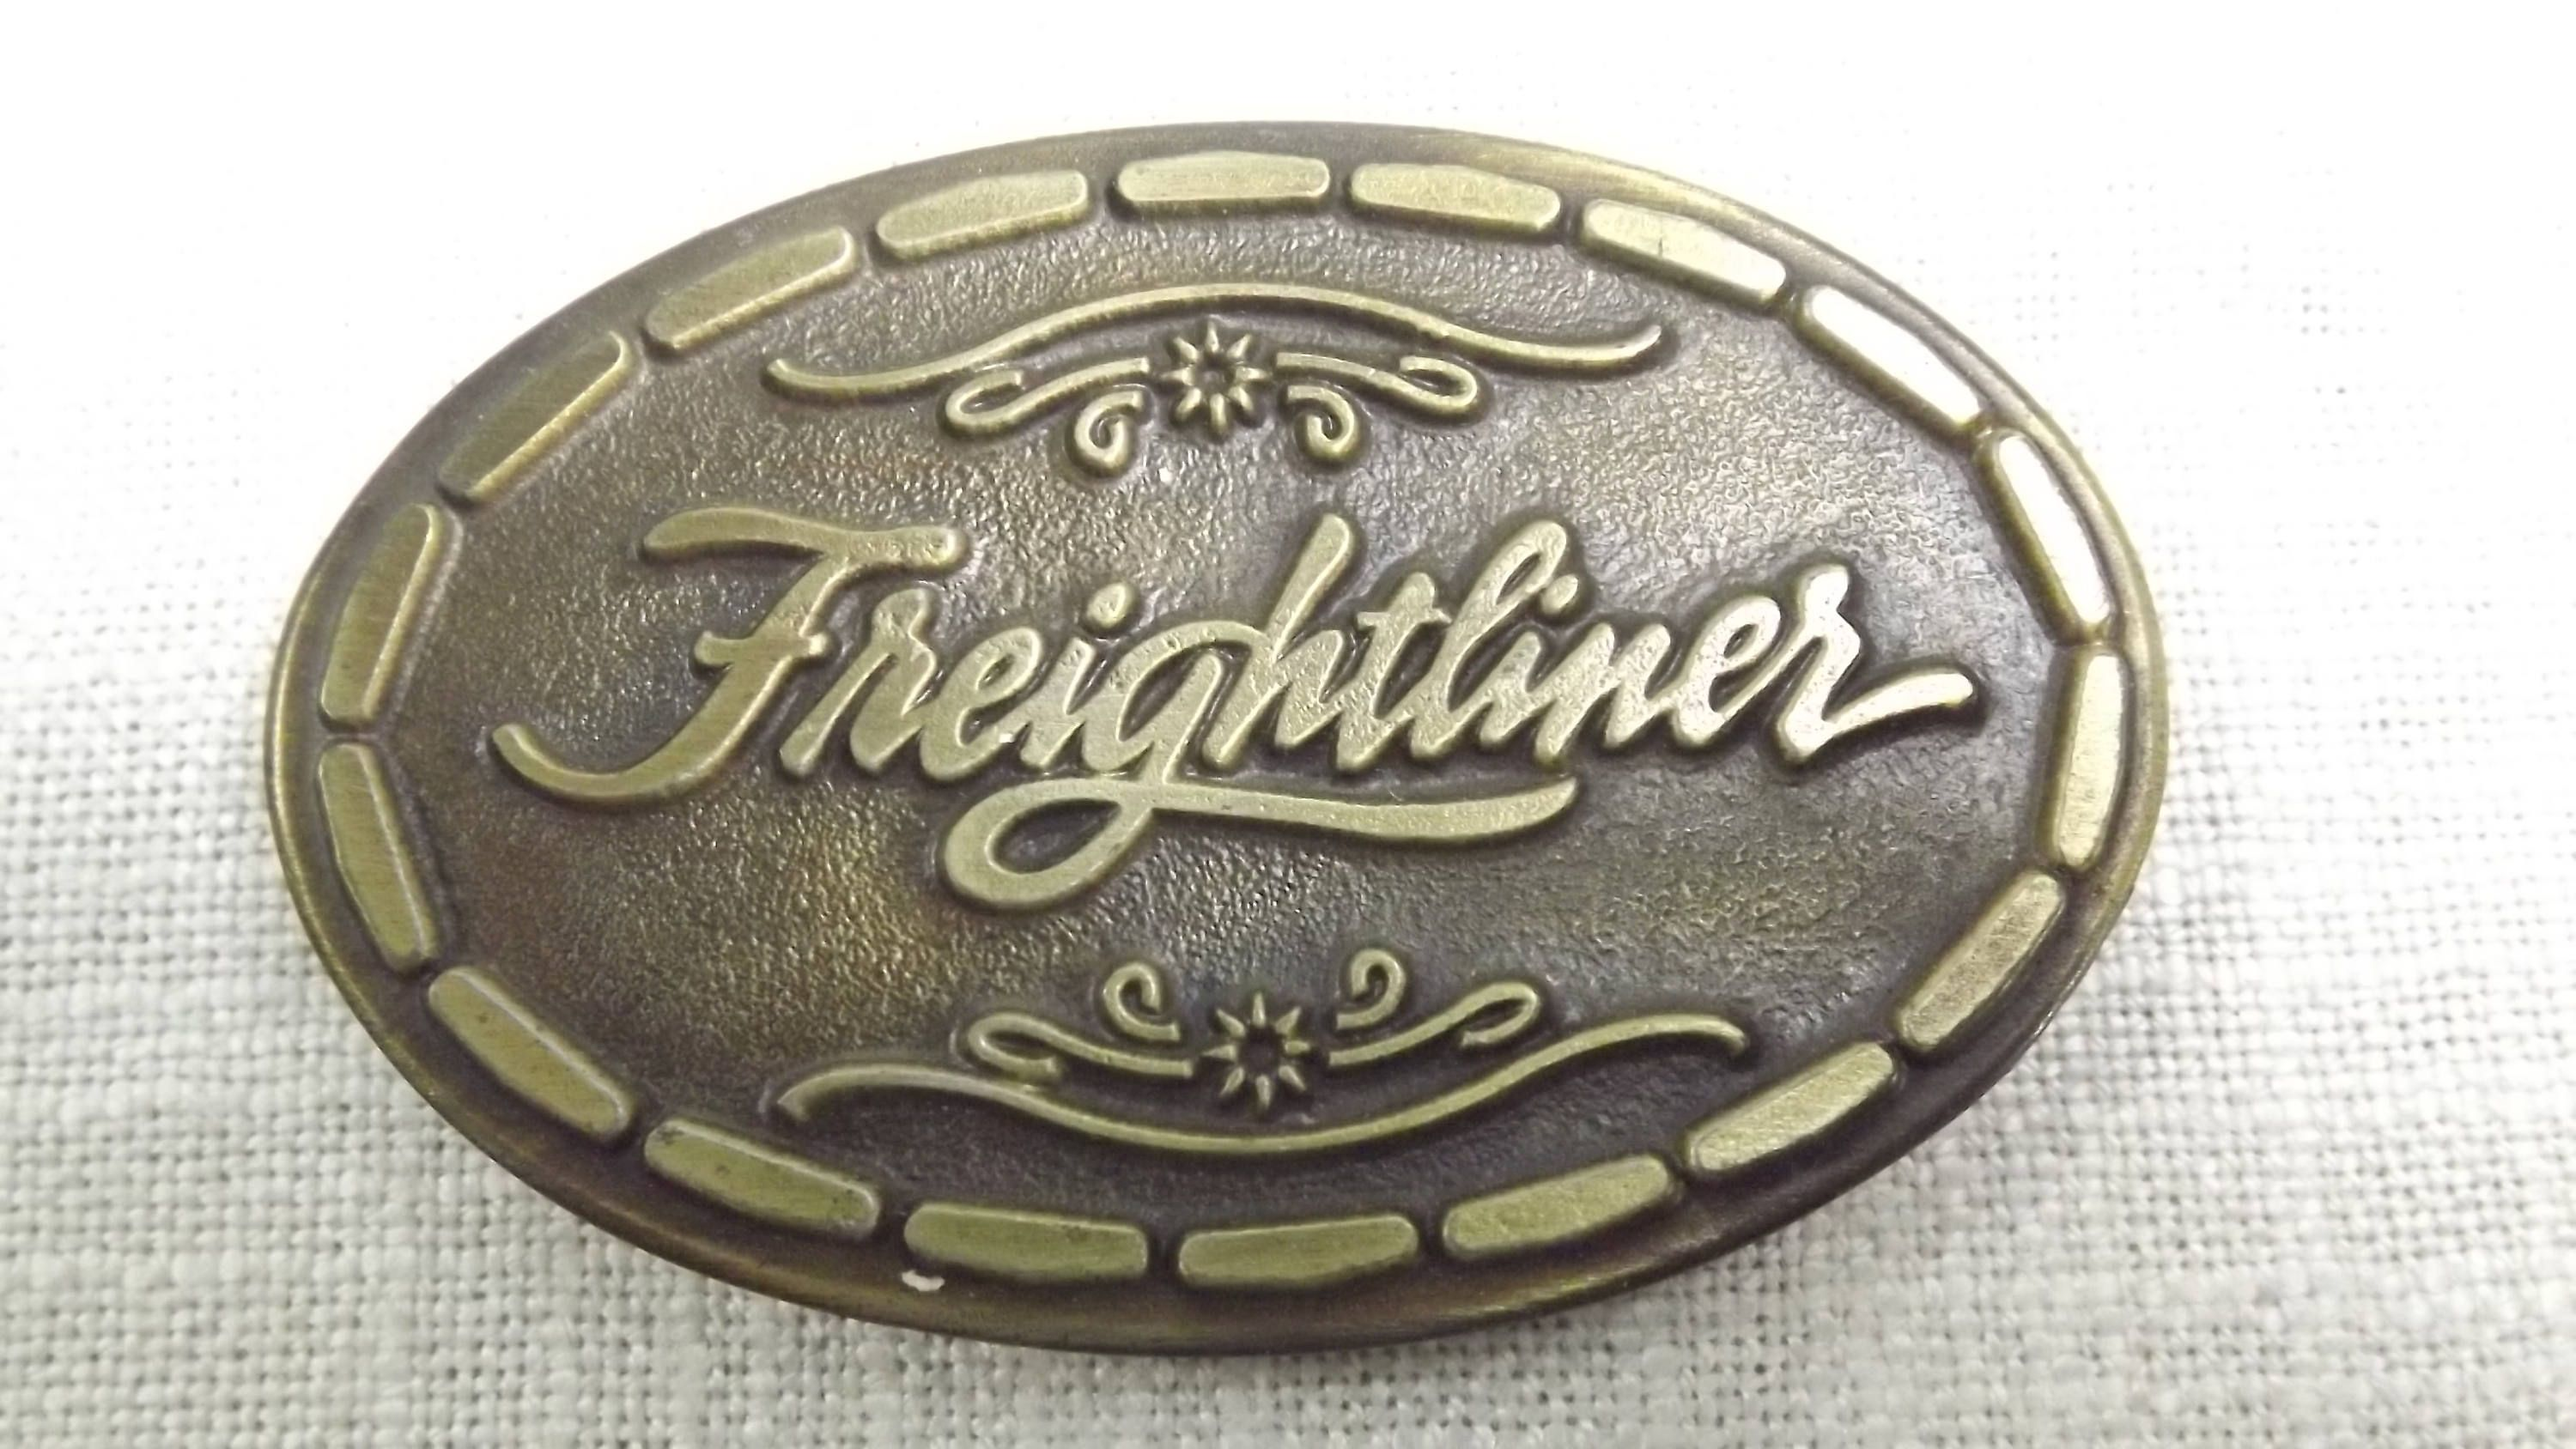 Vintage Freightliner Collectible Belt Buckle Transportation Etsy Belt Buckles Freightliner Buckle